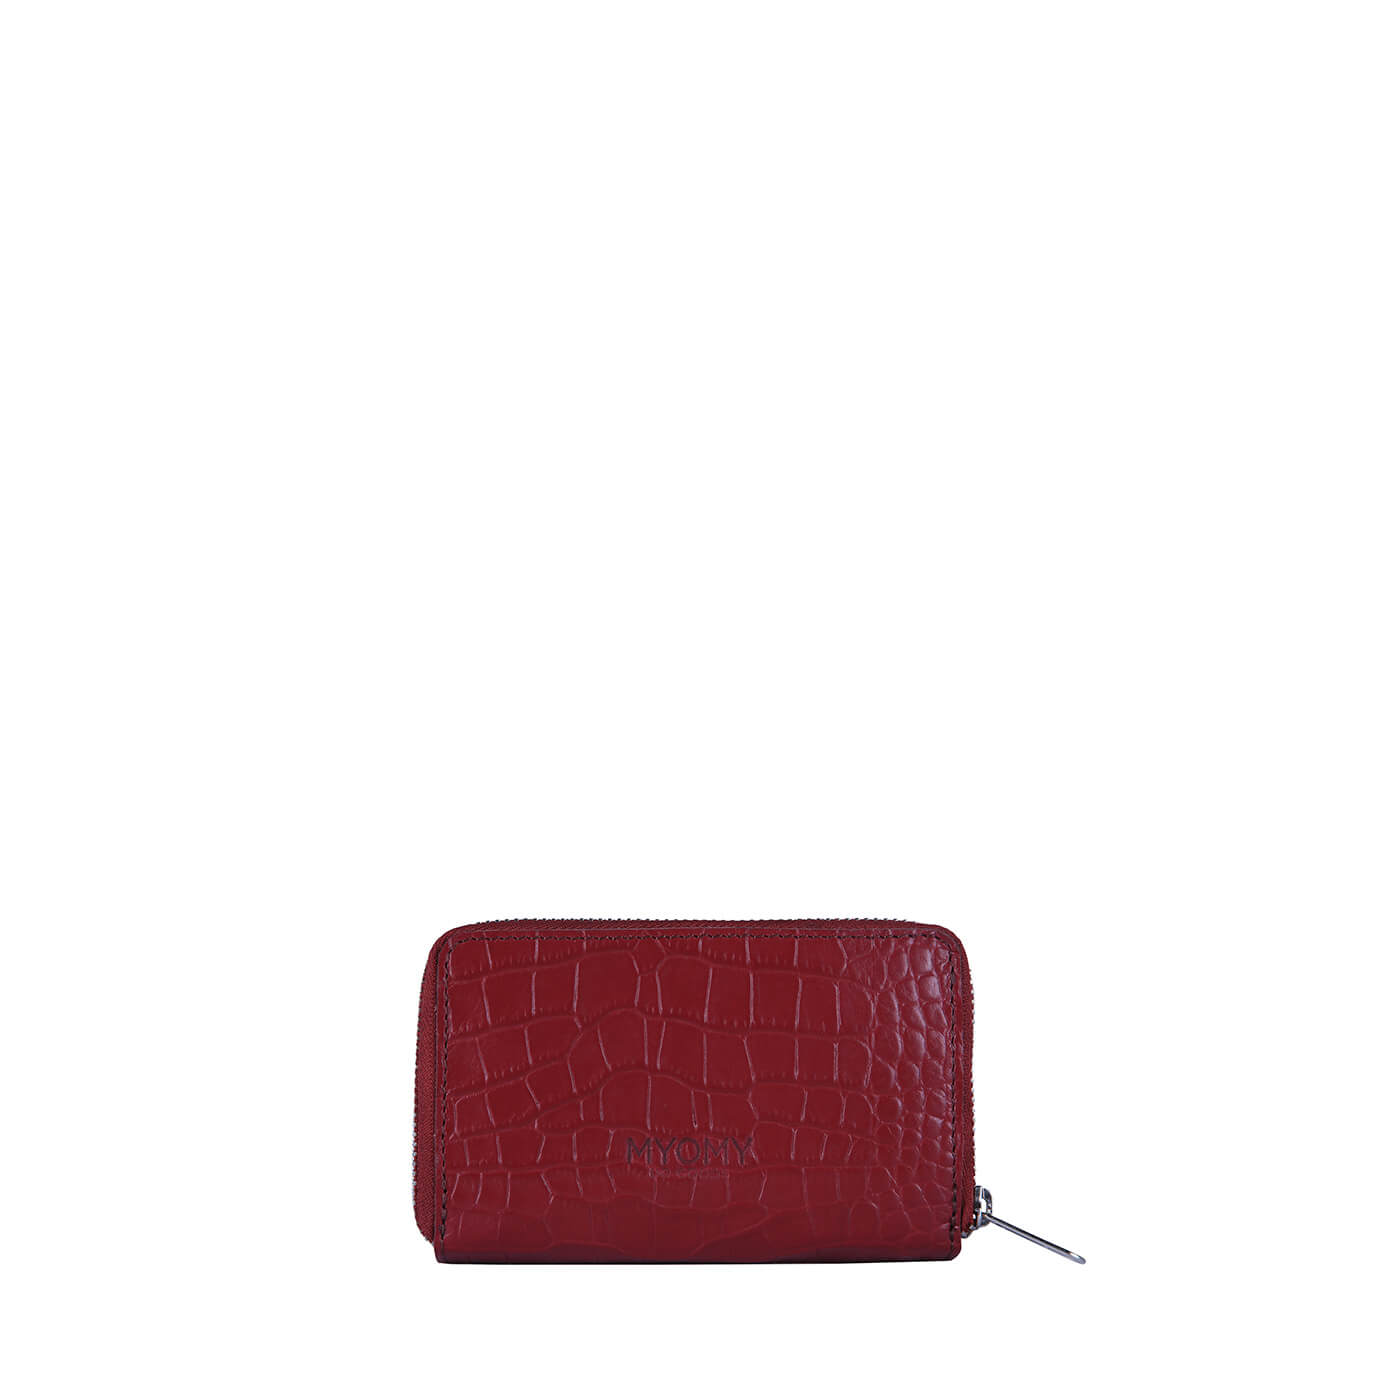 [PRE-ORDER] MY PAPER BAG Wallet Medium – croco burgundy